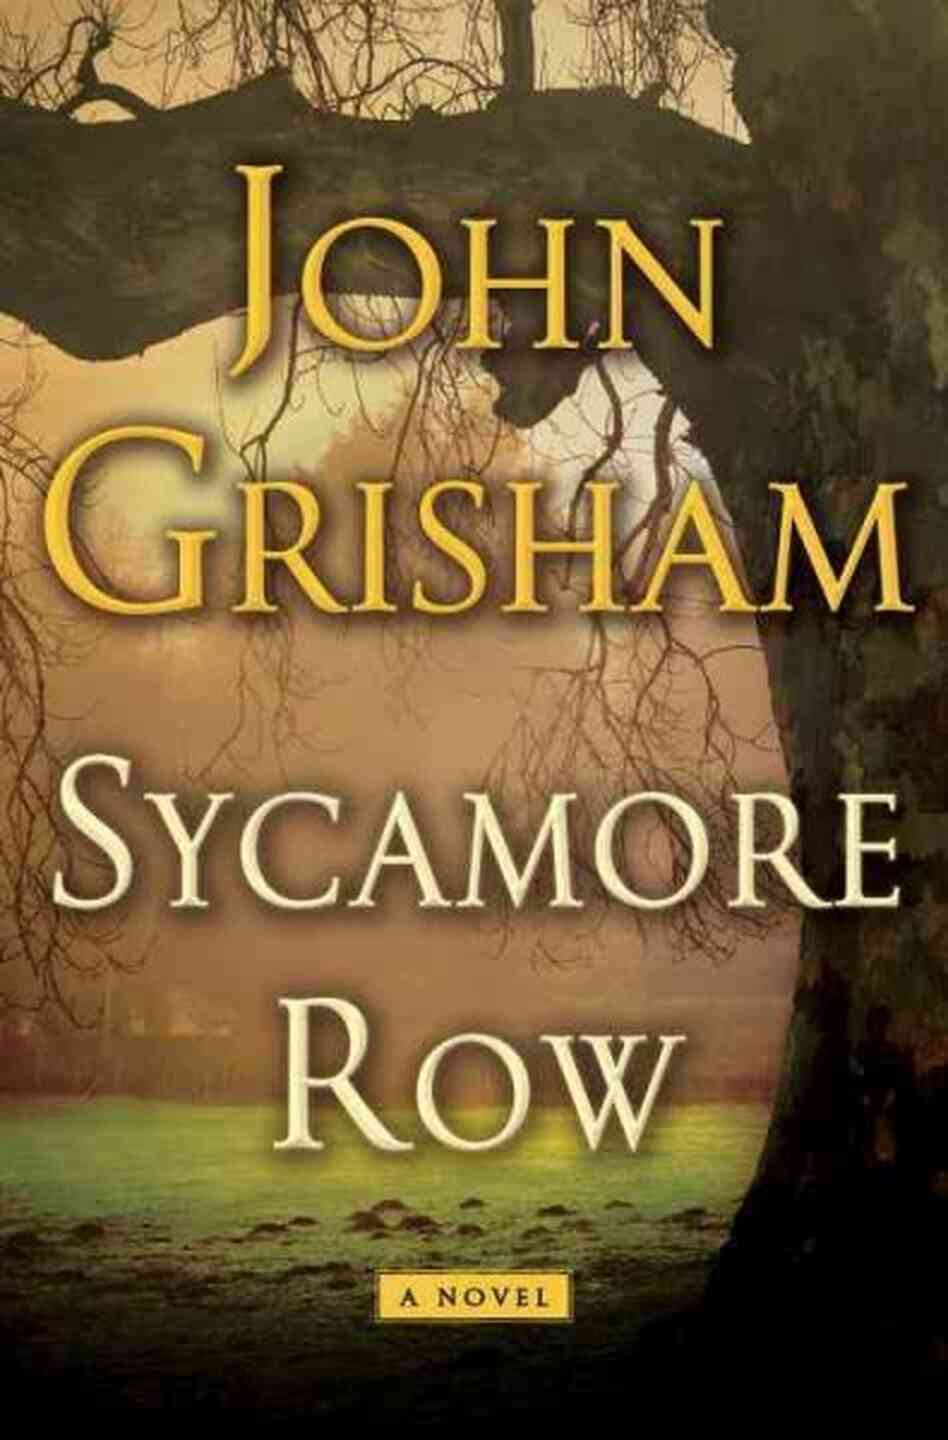 a biography of the early life and literary carer of john grisham Background and early career john grisham jr was born on grisham has worked in other literary genres outside of the adult novel john grisham biography.